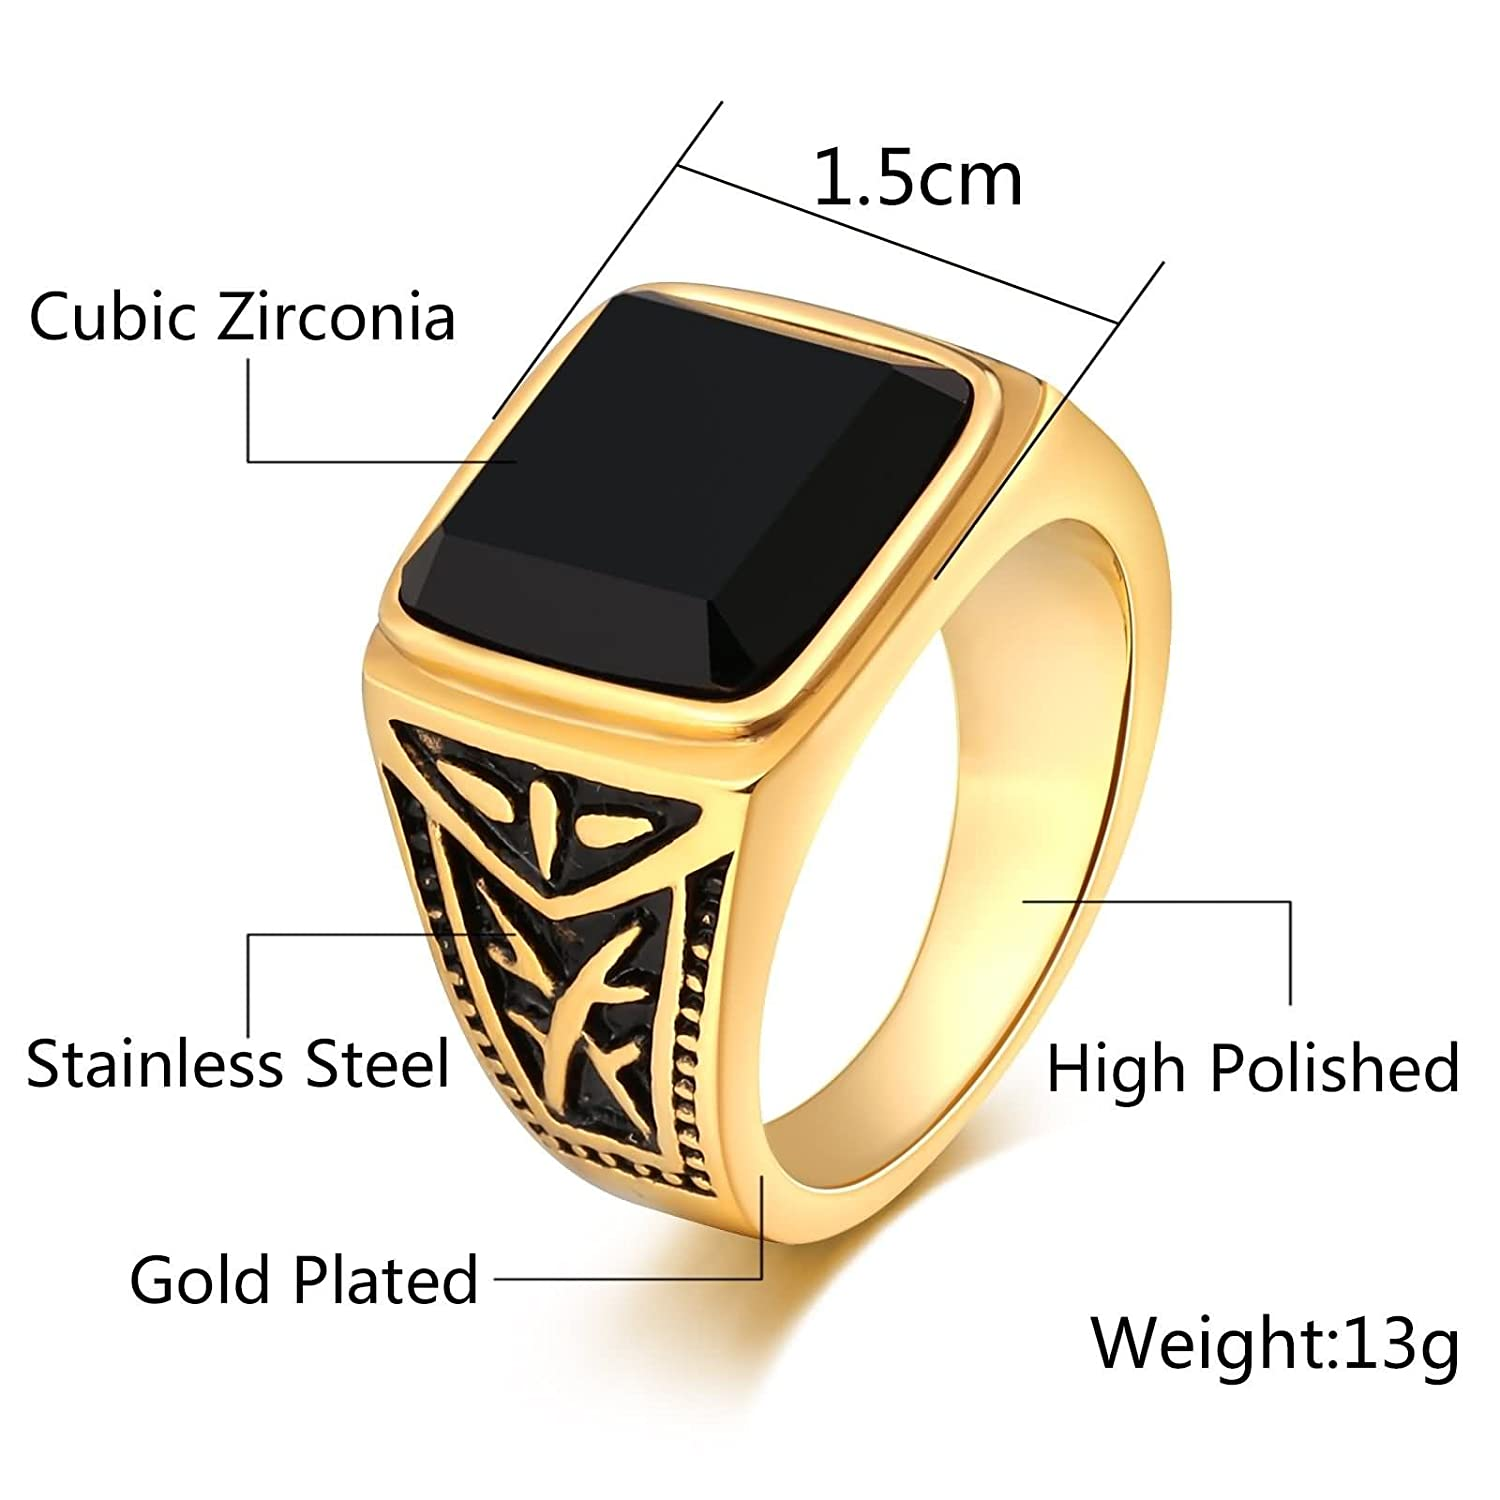 AMDXD Jewellery Stainless Steel Wedding Rings for Men Square Totem Cubic Zirconia Ring